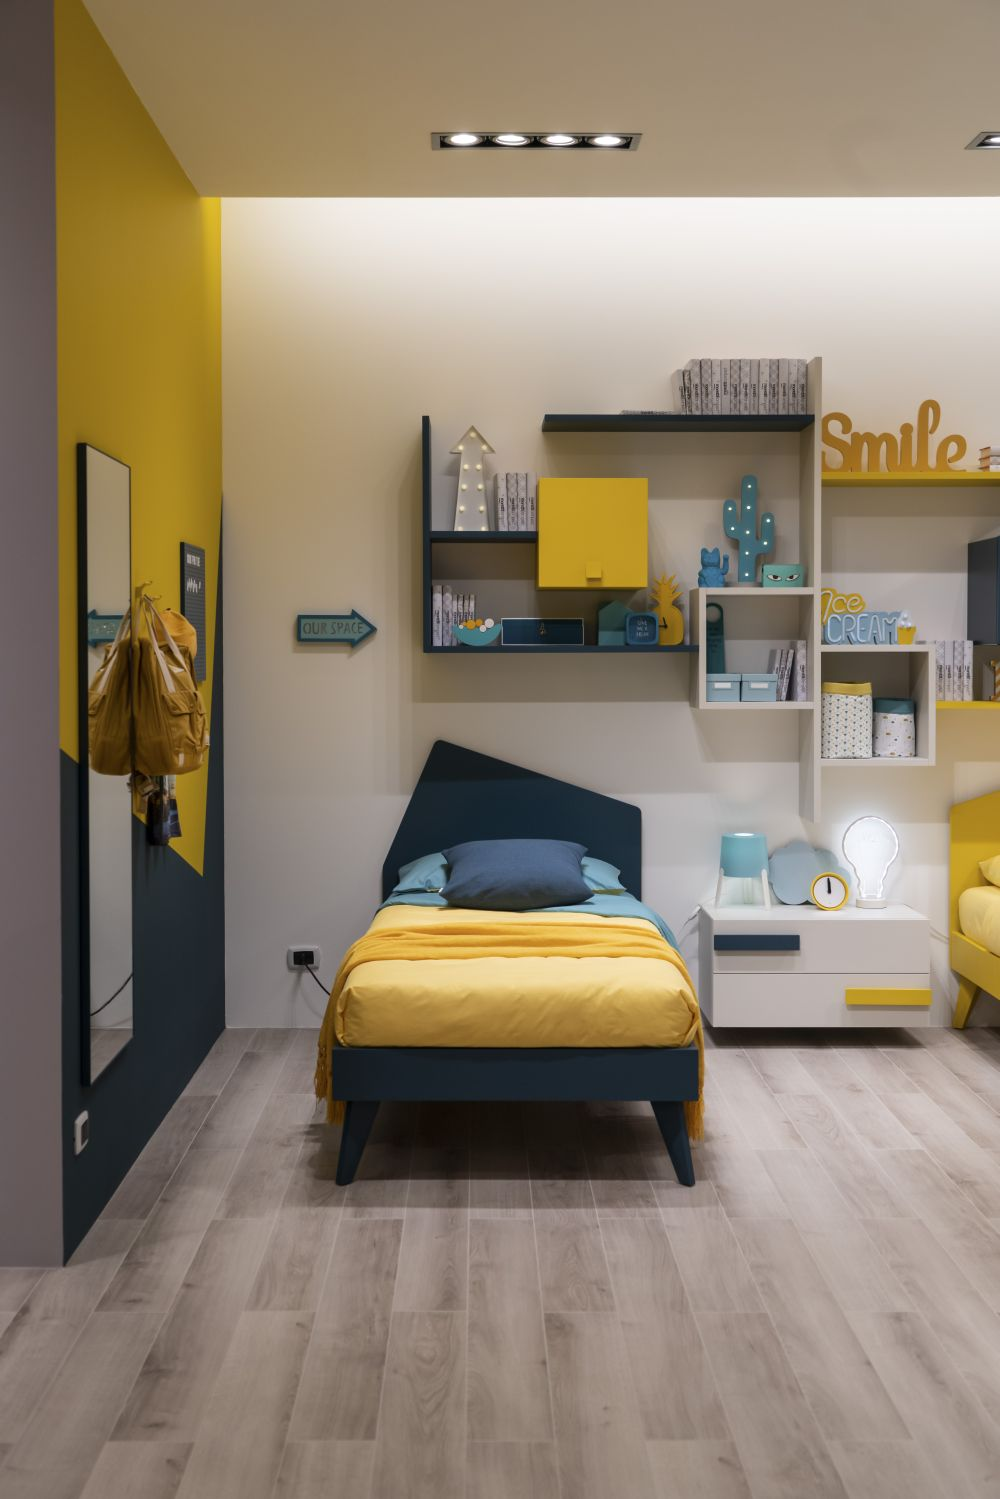 1572864203 610 cool furniture and design ideas for teenage rooms - Cool Furniture And Design Ideas For Teenage Rooms